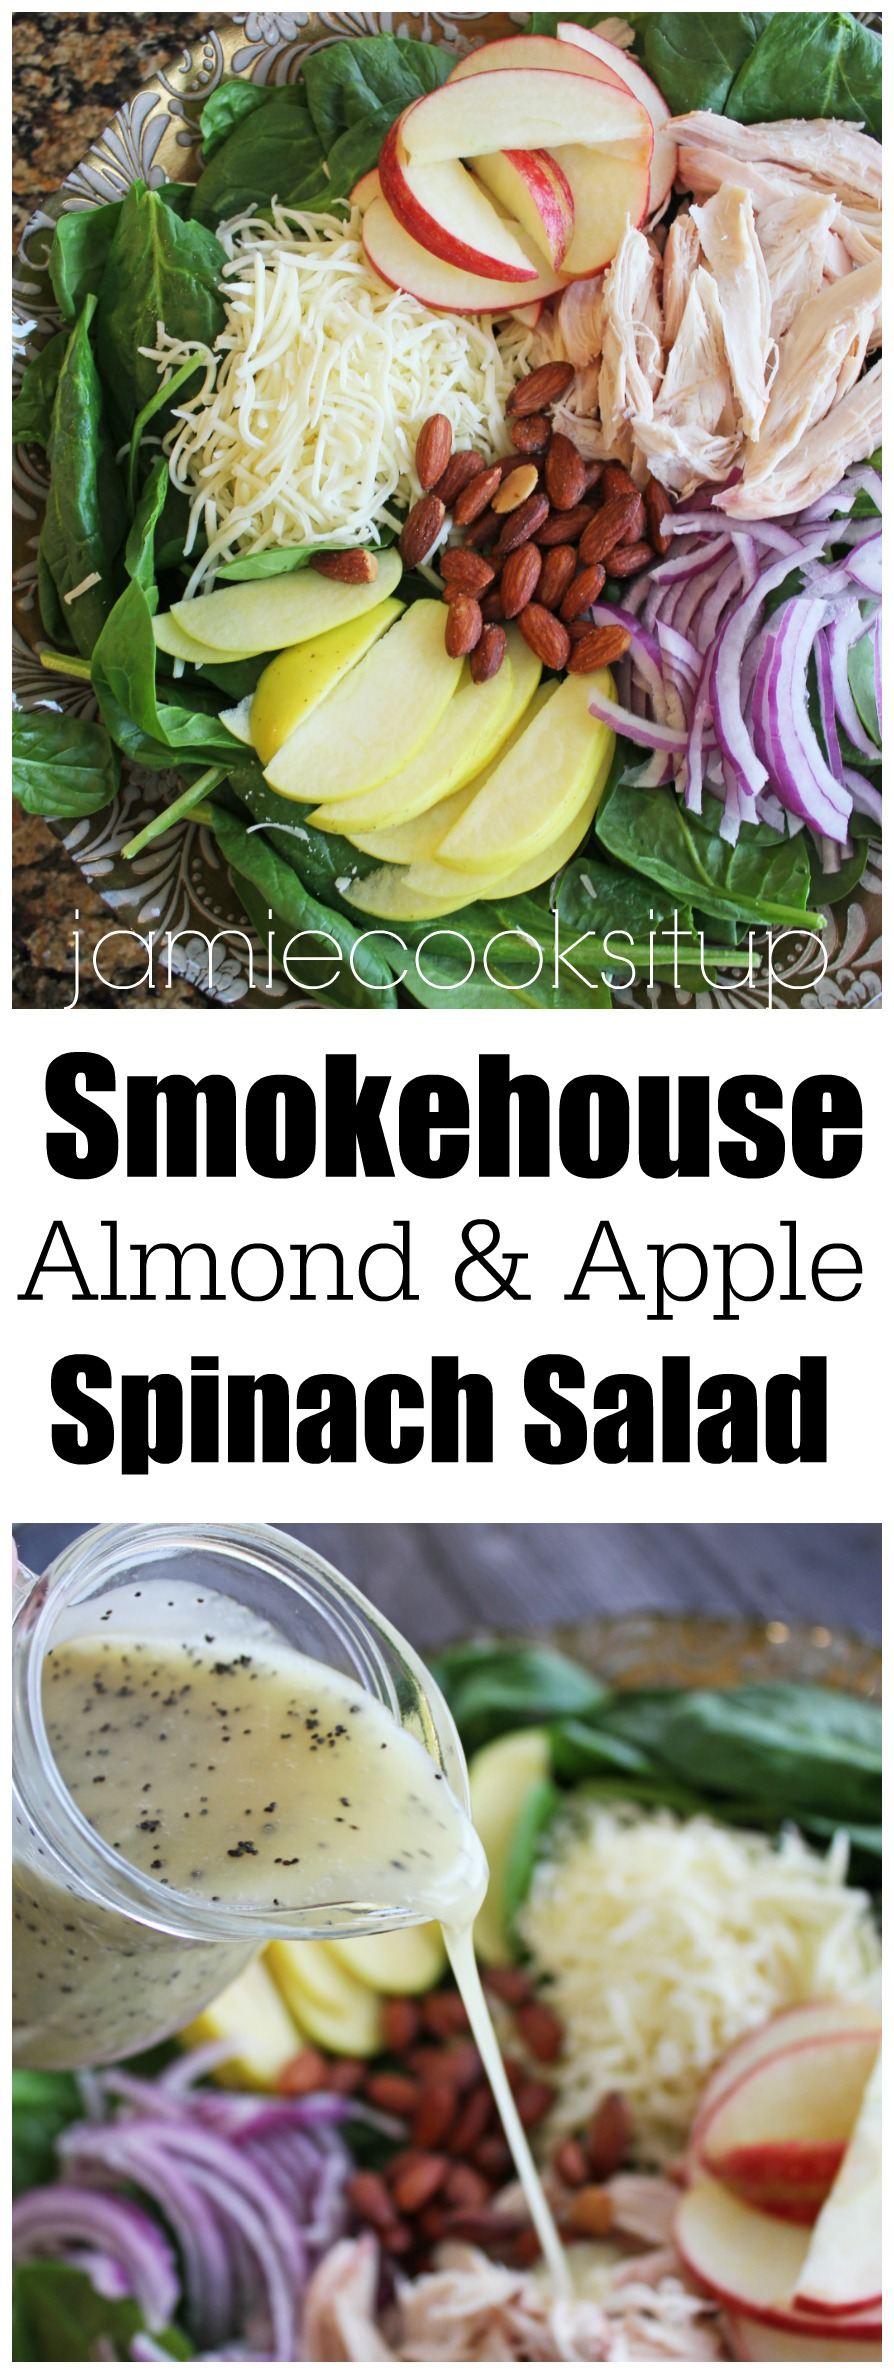 smokehouse-almond-and-apple-spinach-salad-from-jamie-cooks-it-up